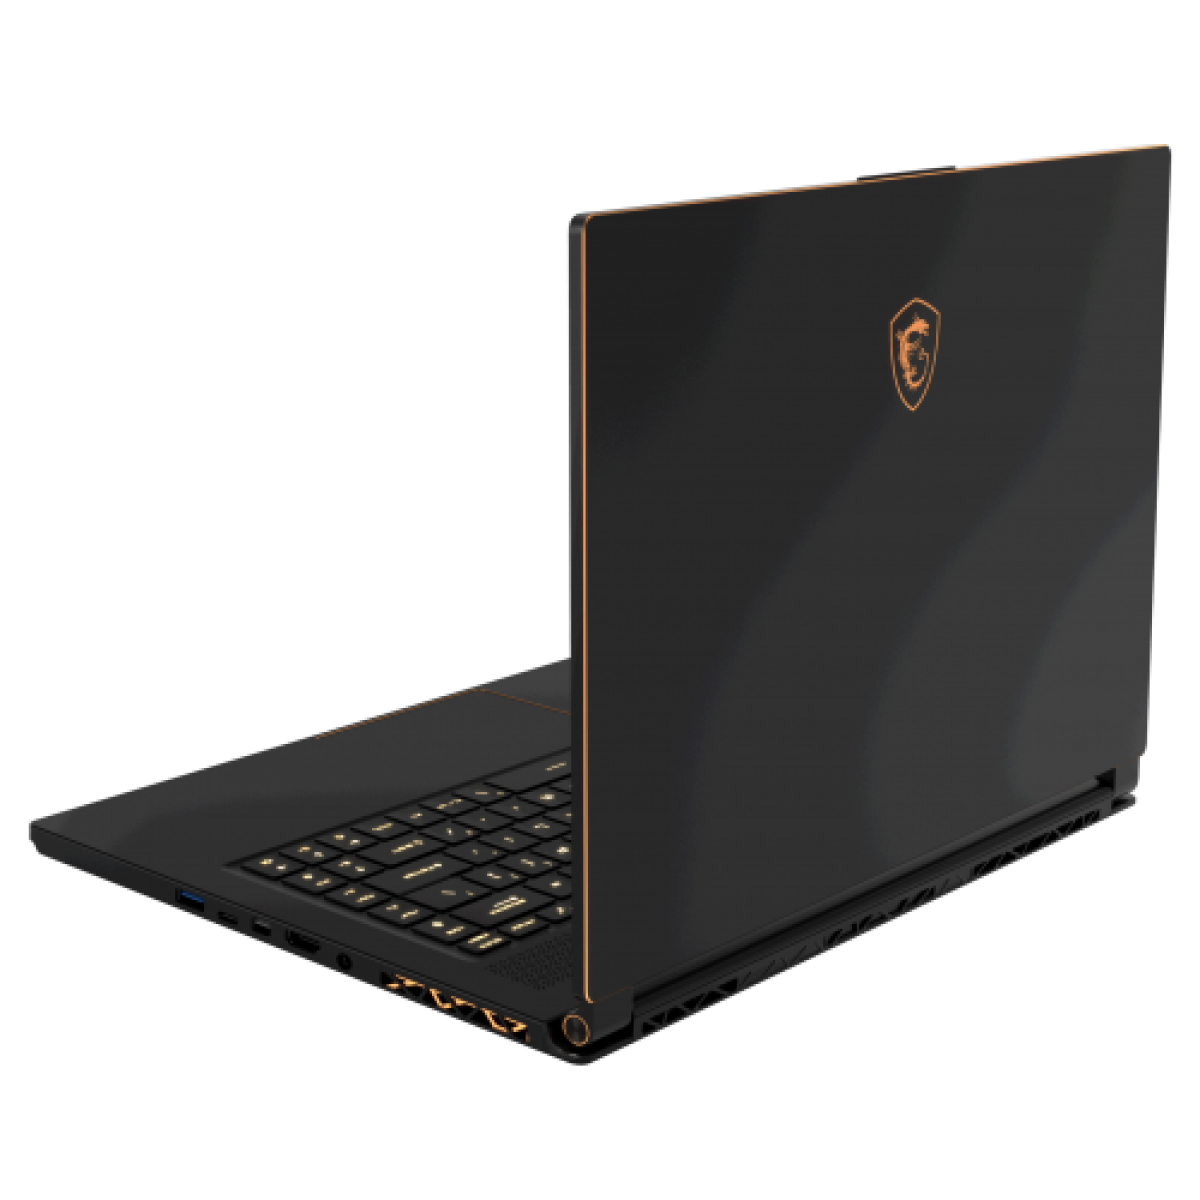 GS65. MSI GS65. MSI GS65 Stealth Thin 8RE-Gaming - AIO Electronic Shop